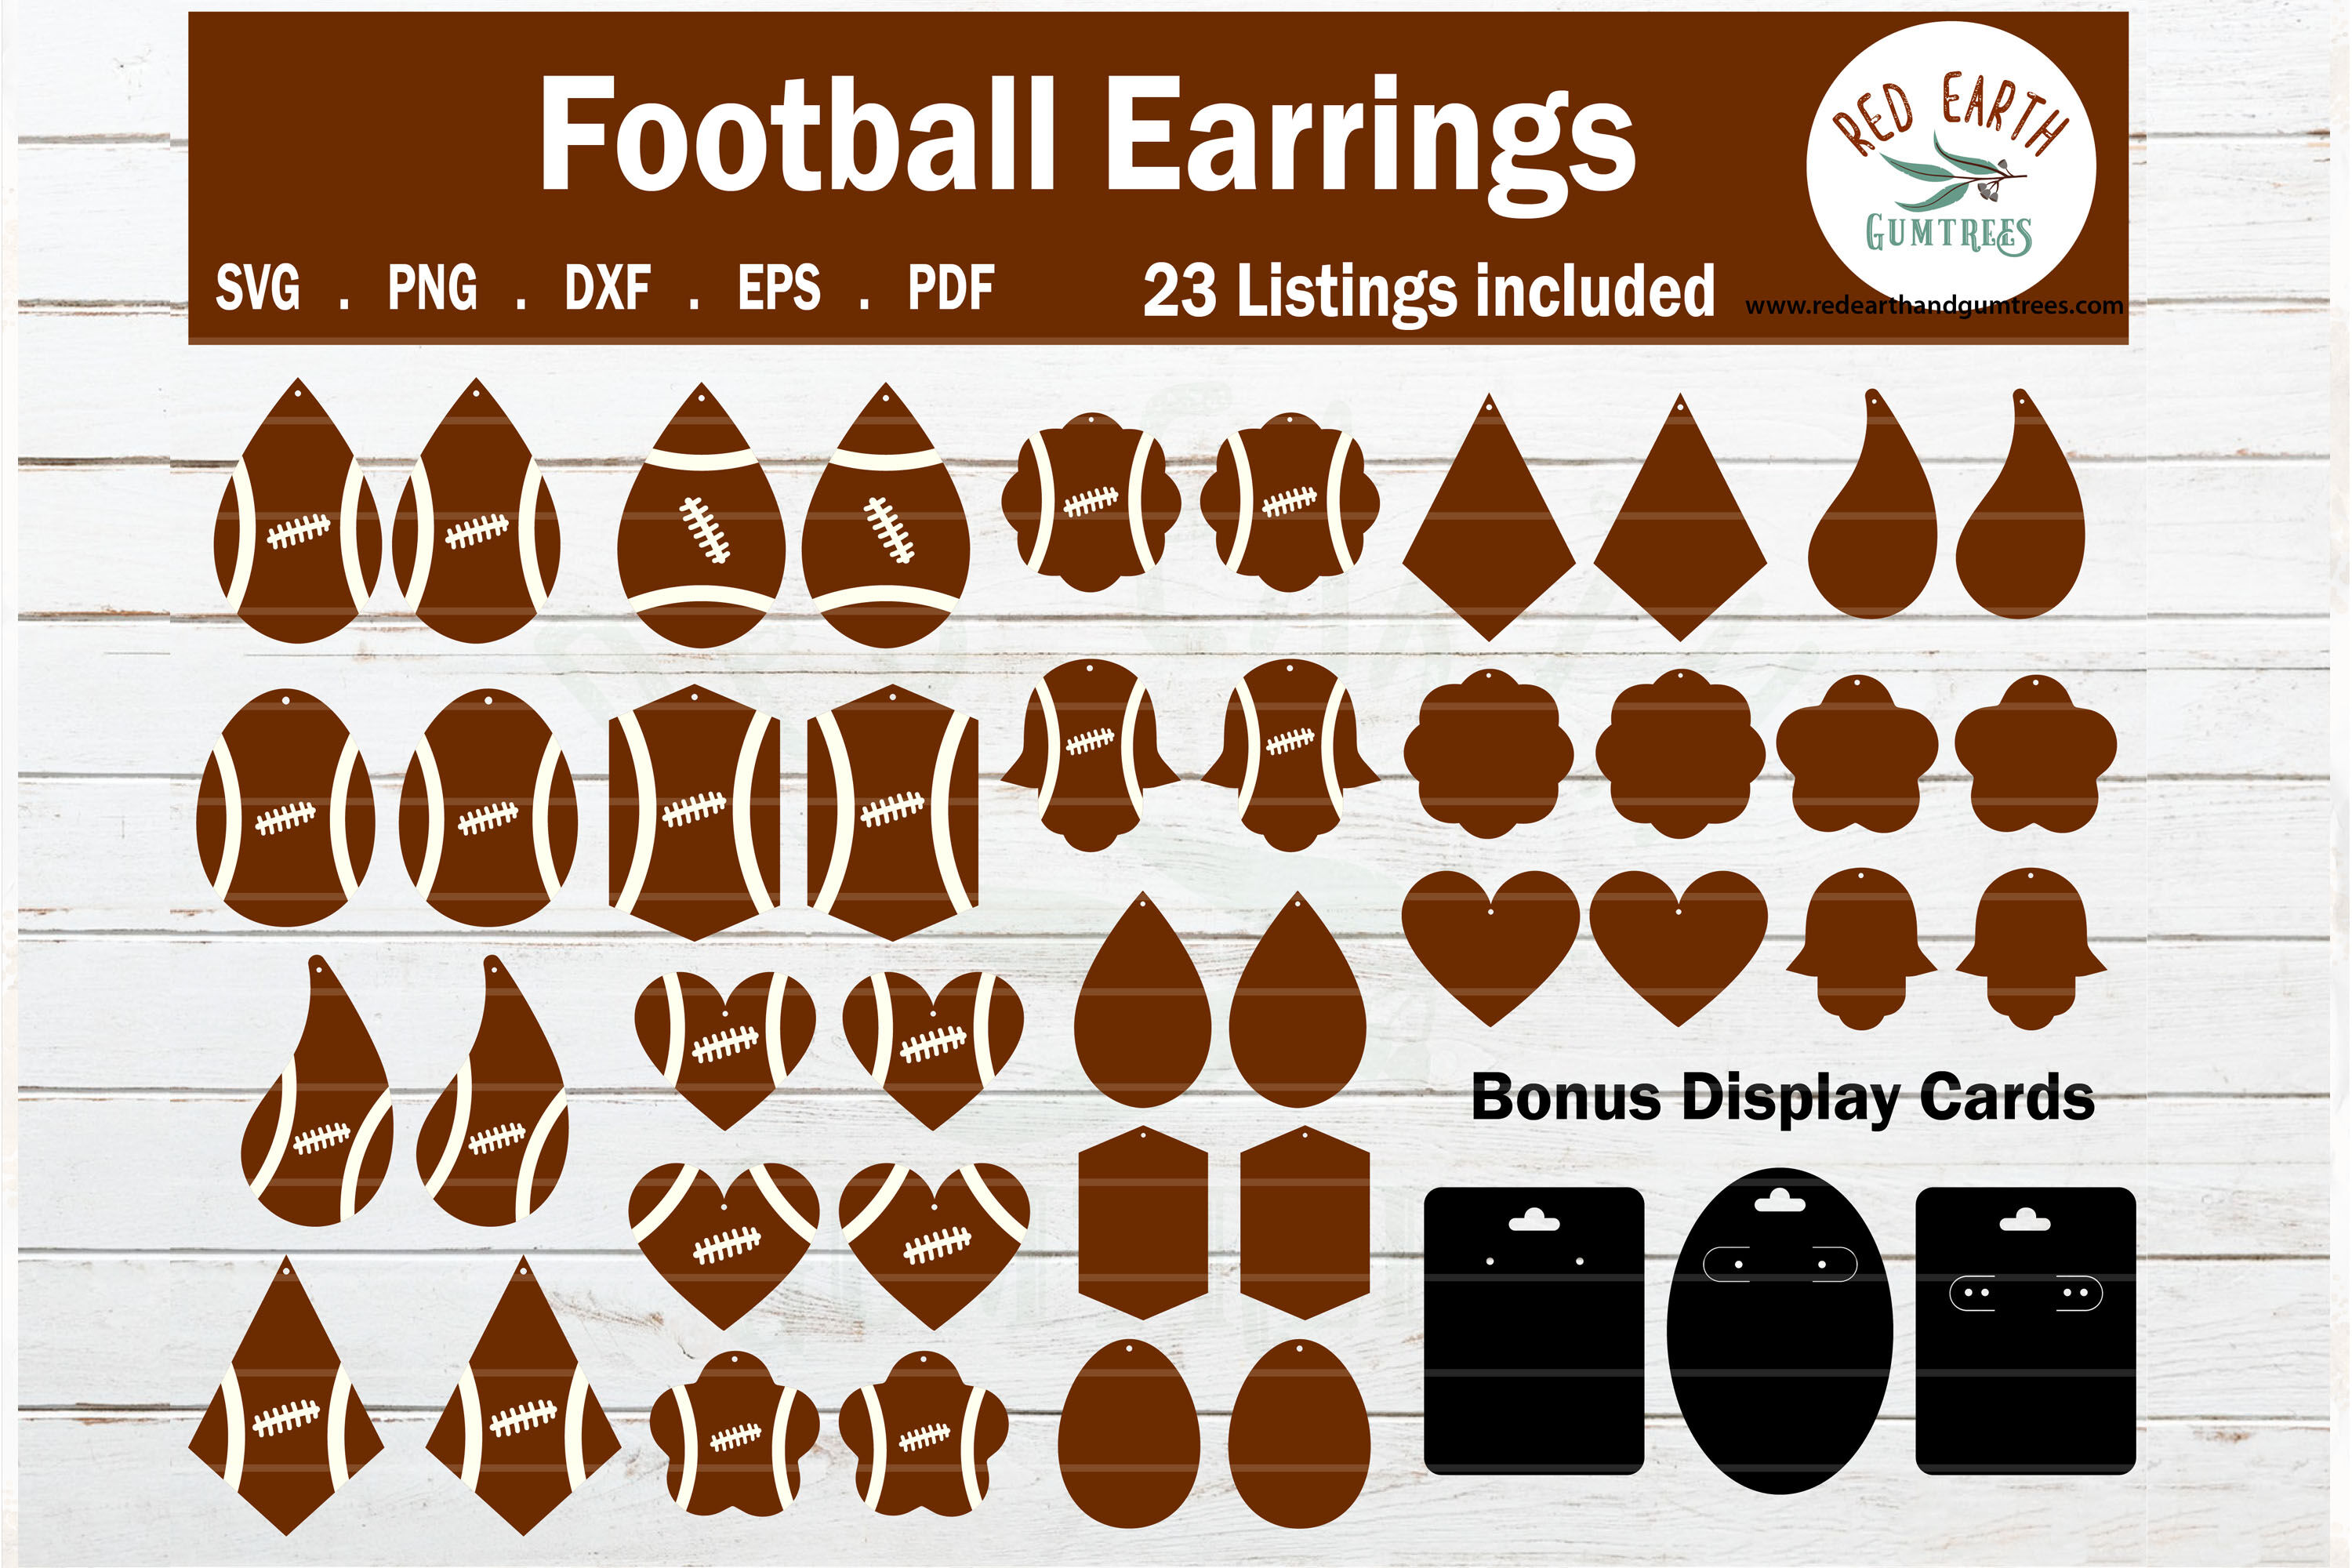 Football Earrings Template With Display Card Svg Png Dxf Eps By